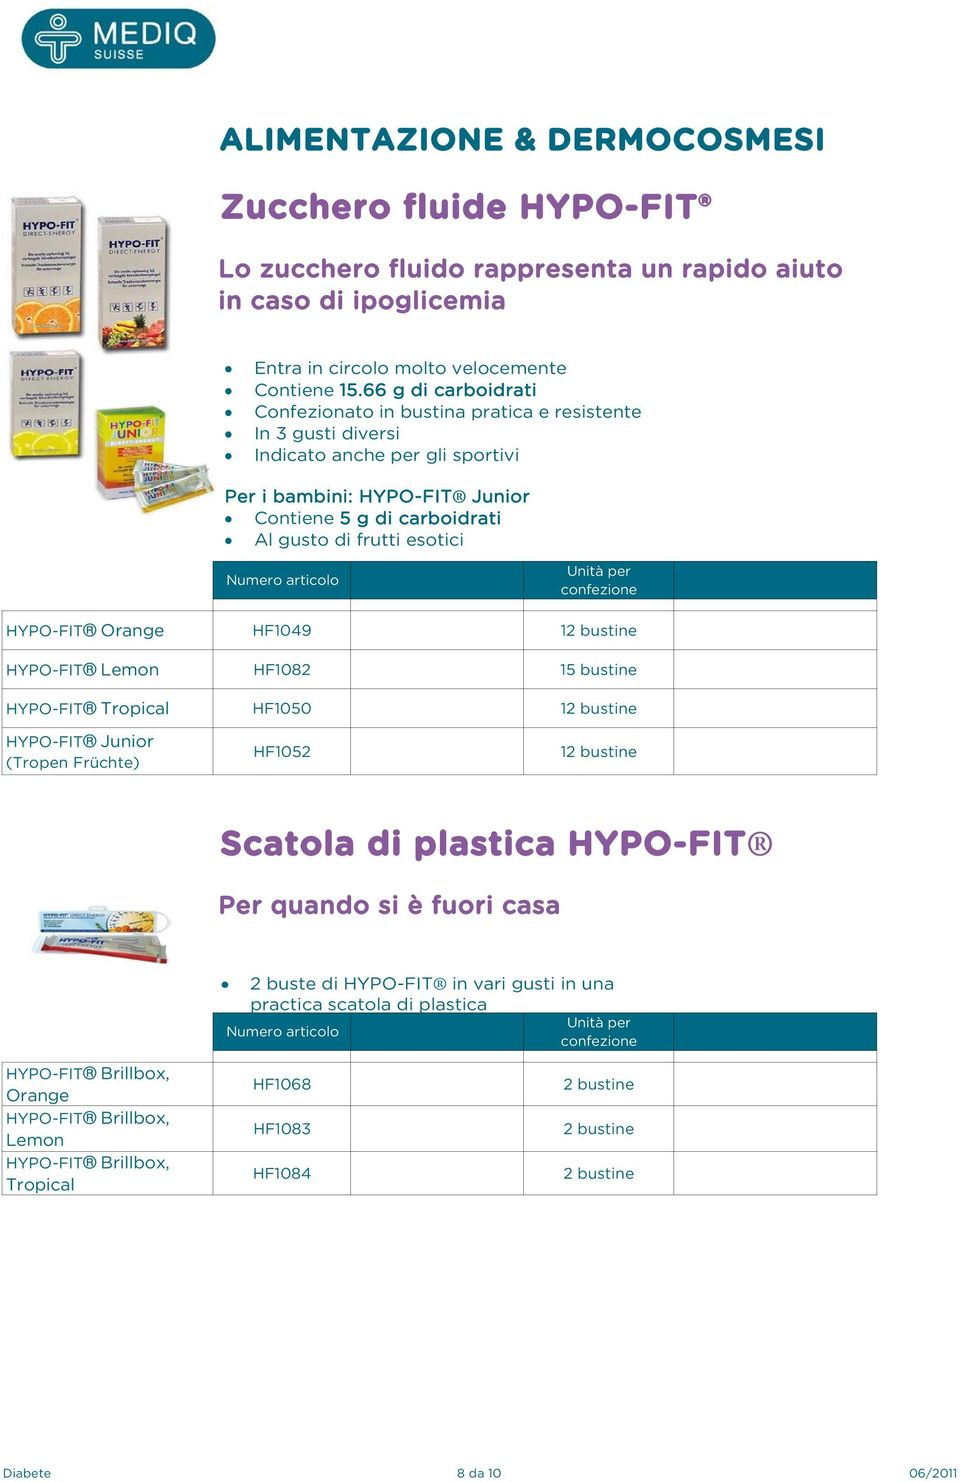 esotici HYPO-FIT Orange HF1049 12 bustine HYPO-FIT Lemon HF1082 15 bustine HYPO-FIT Tropical HF1050 12 bustine HYPO-FIT Junior (Tropen Früchte) HF1052 12 bustine Scatola di plastica HYPO-FIT Per